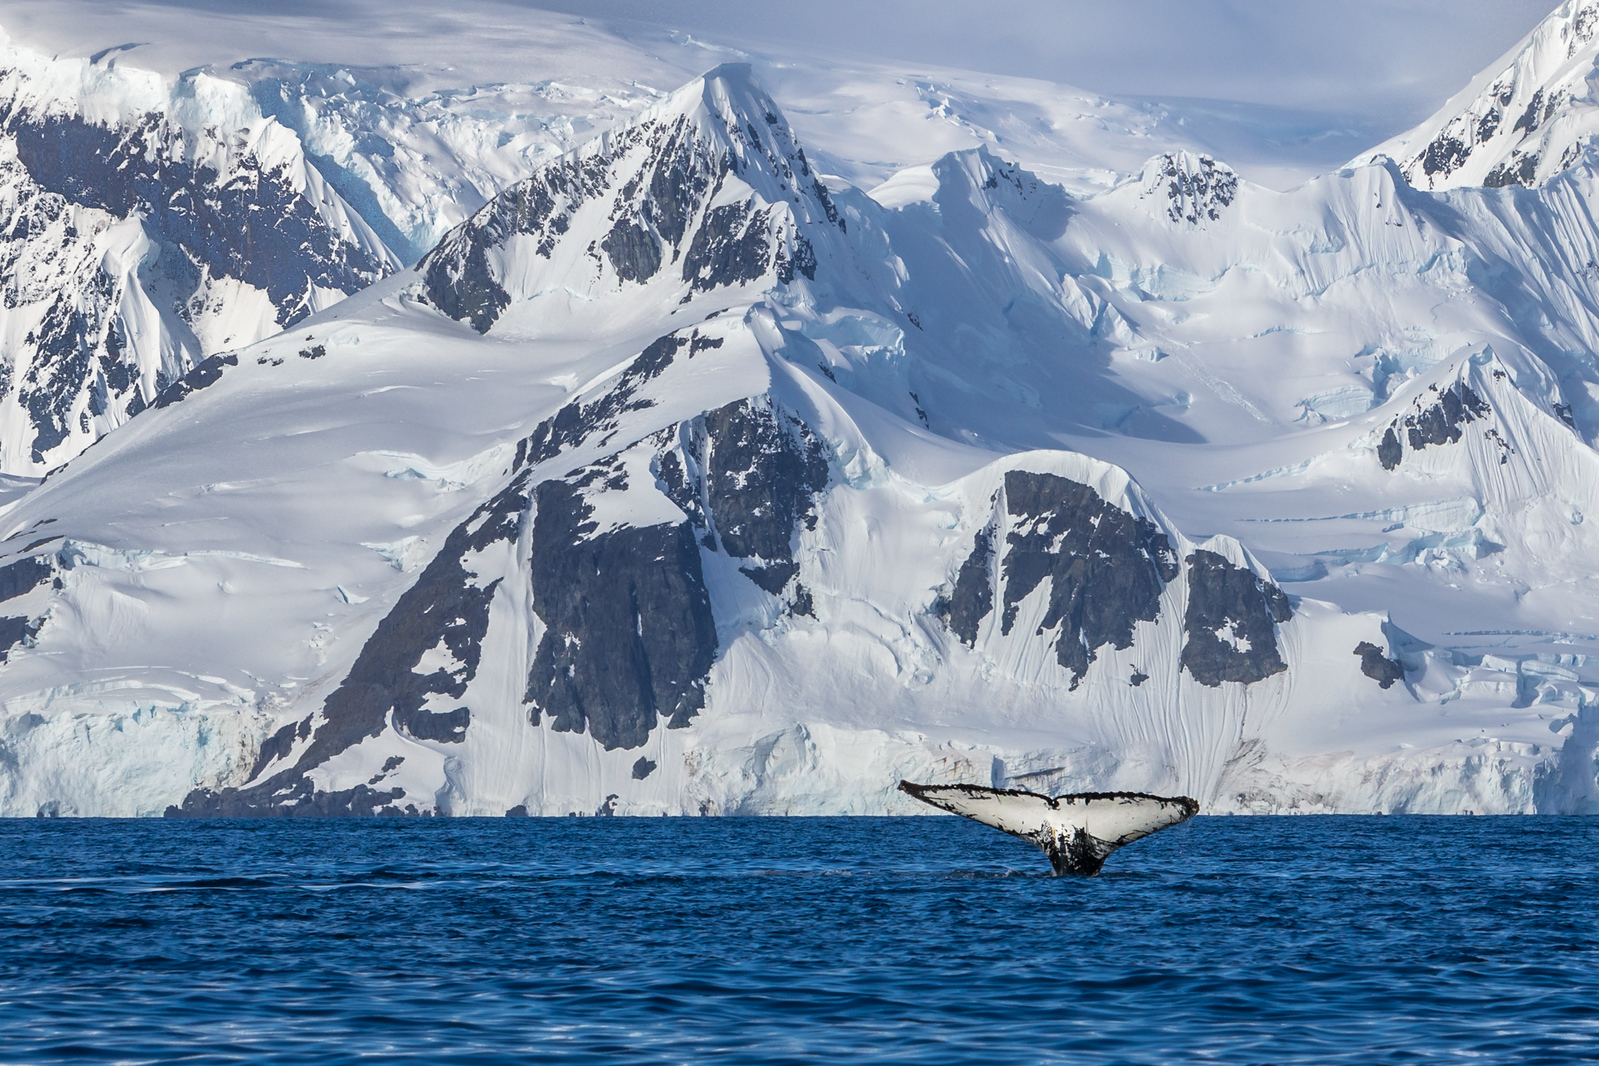 Whale diving in Antarctic Waters